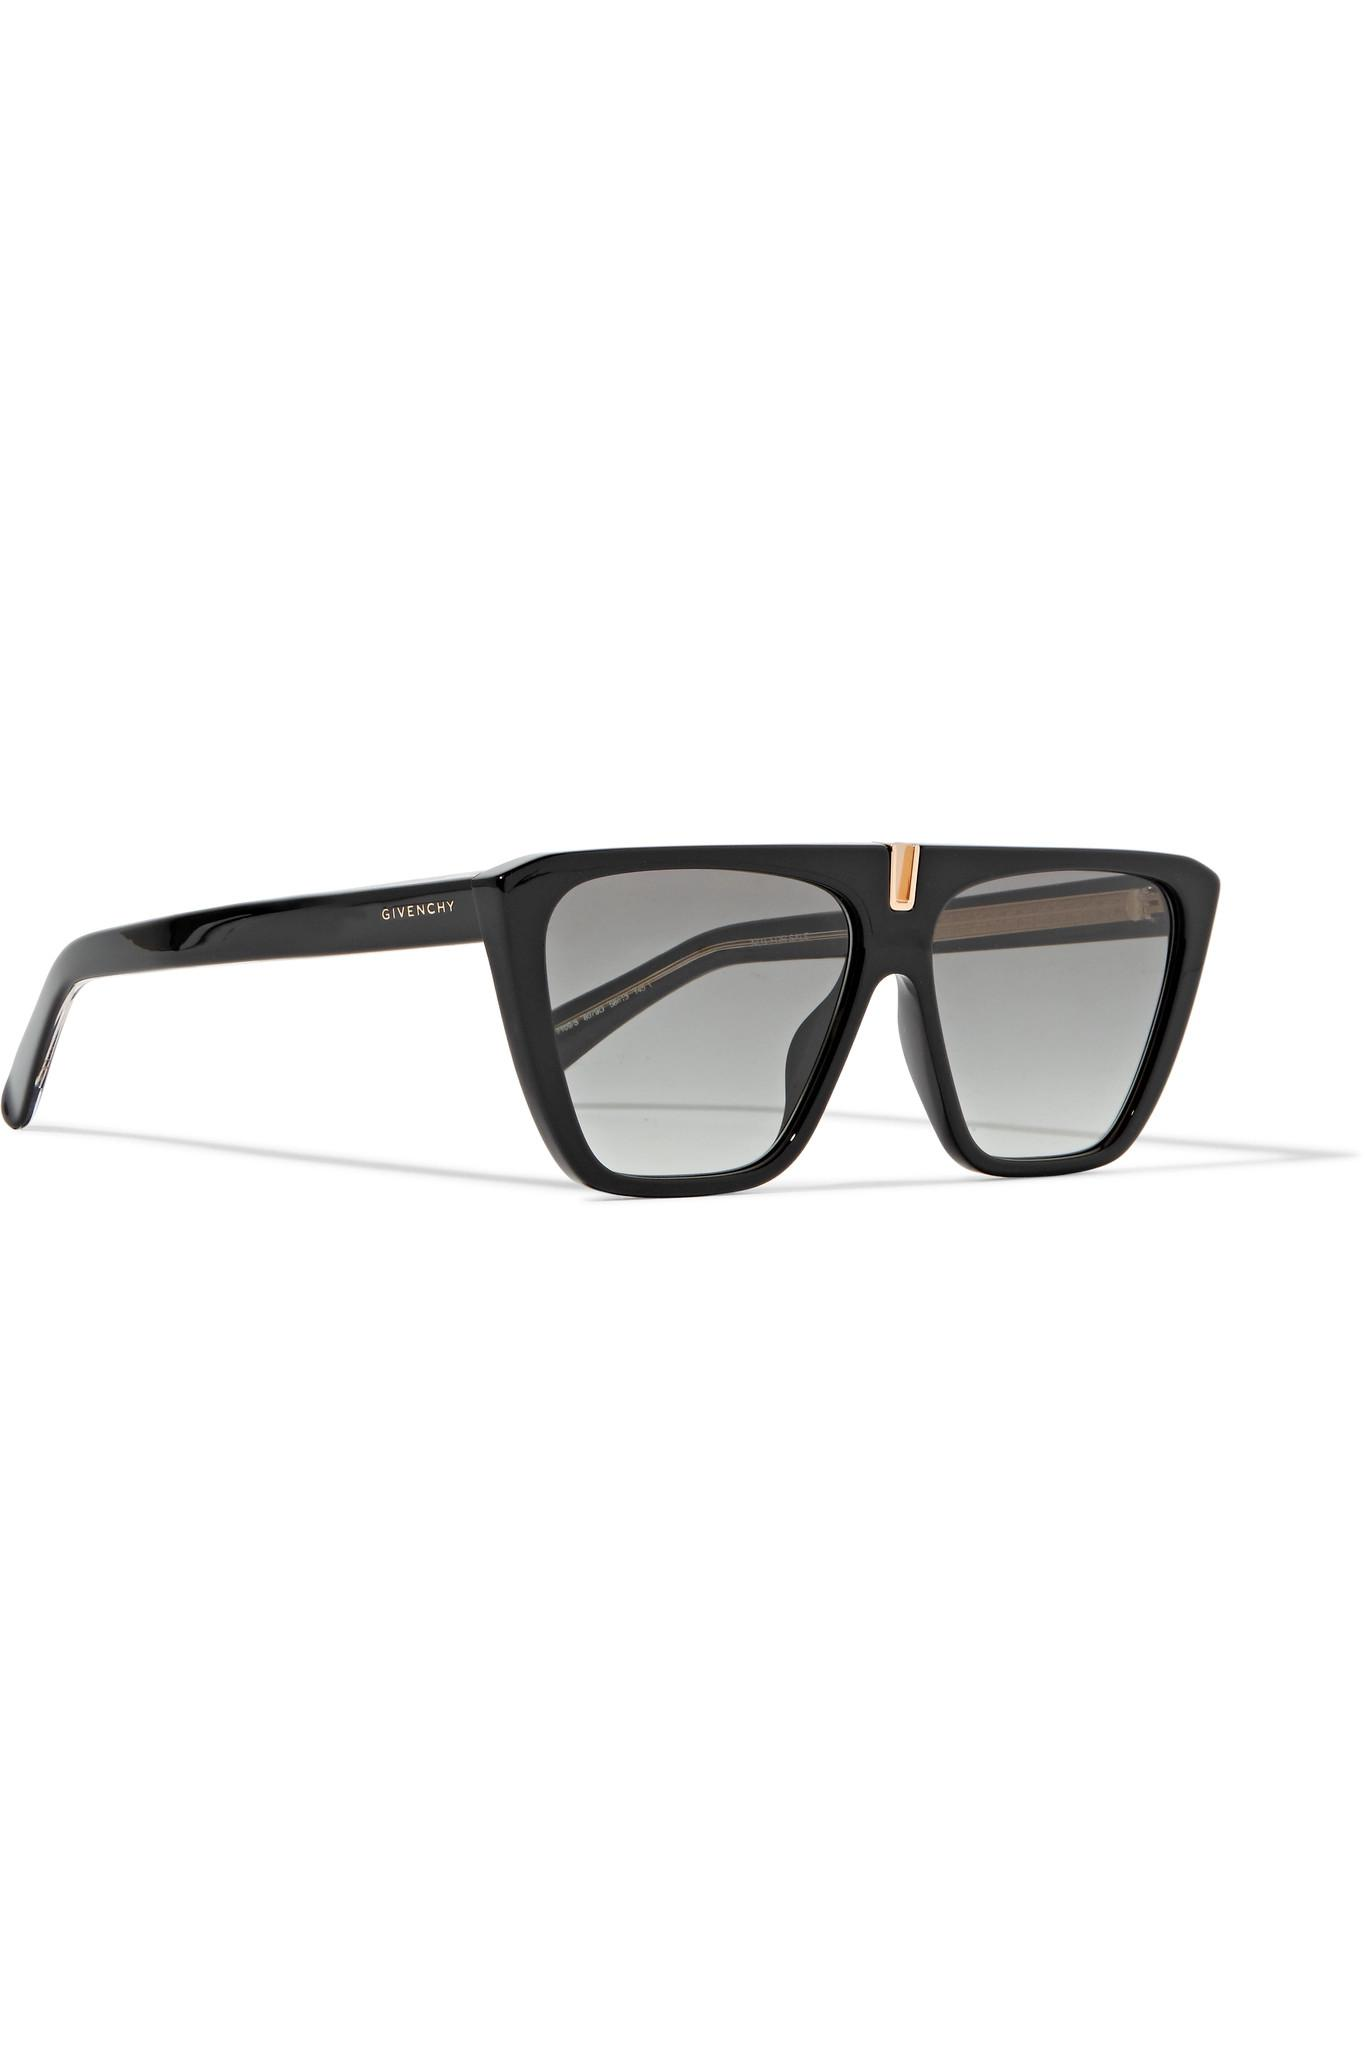 5166a0476cc Lyst - Givenchy D-frame Acetate Sunglasses in Black